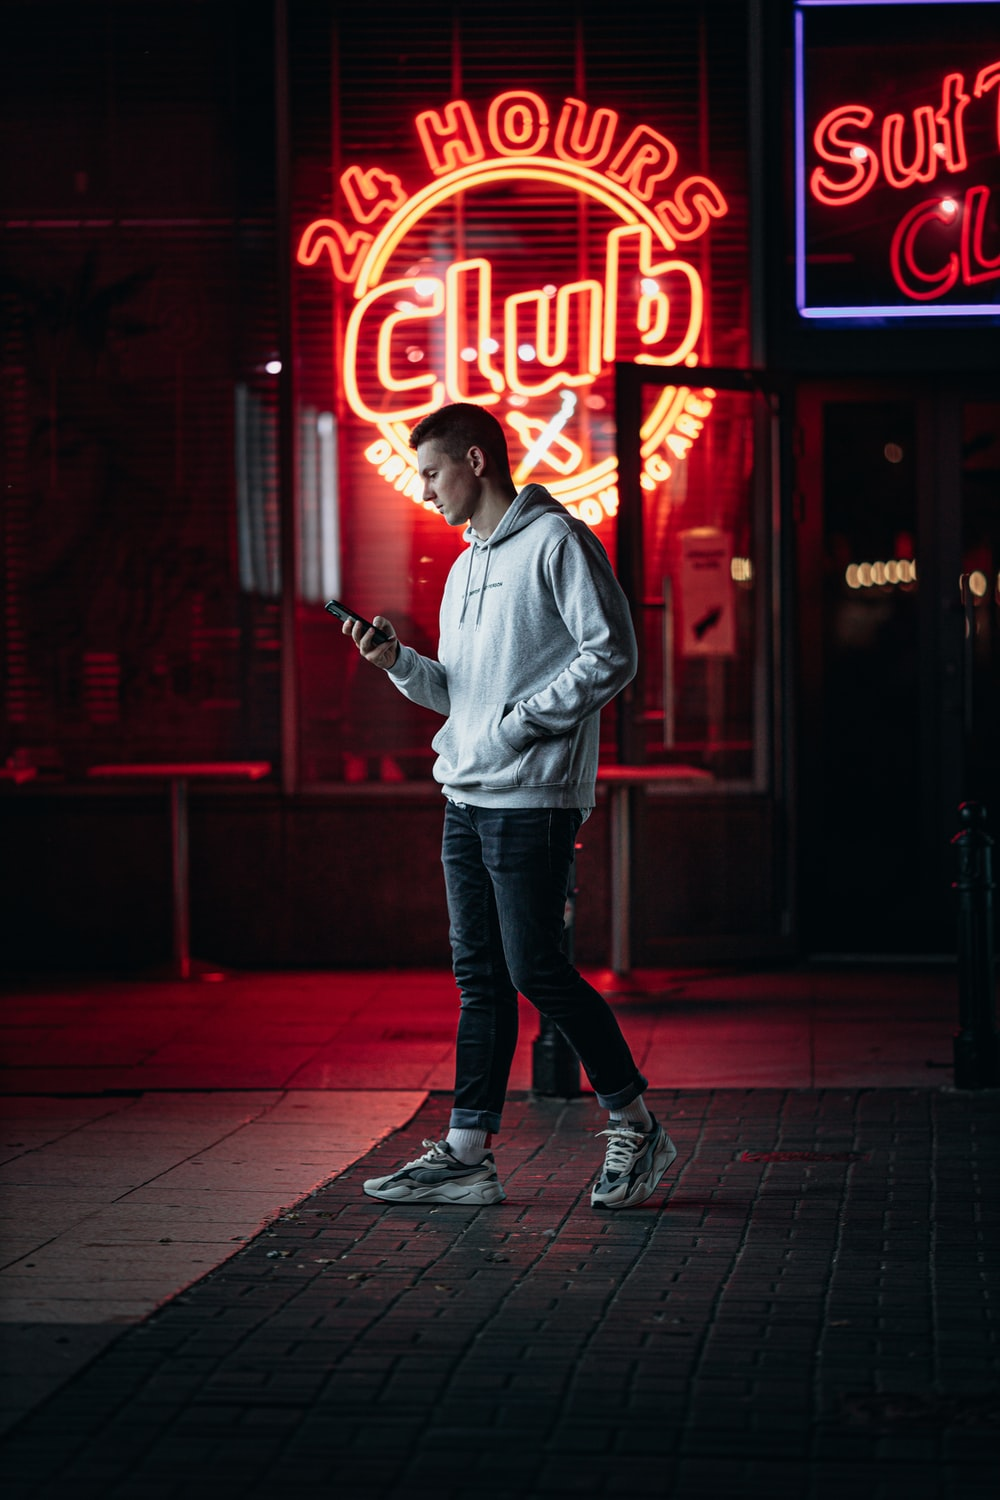 man in gray hoodie standing in front of red neon light signage